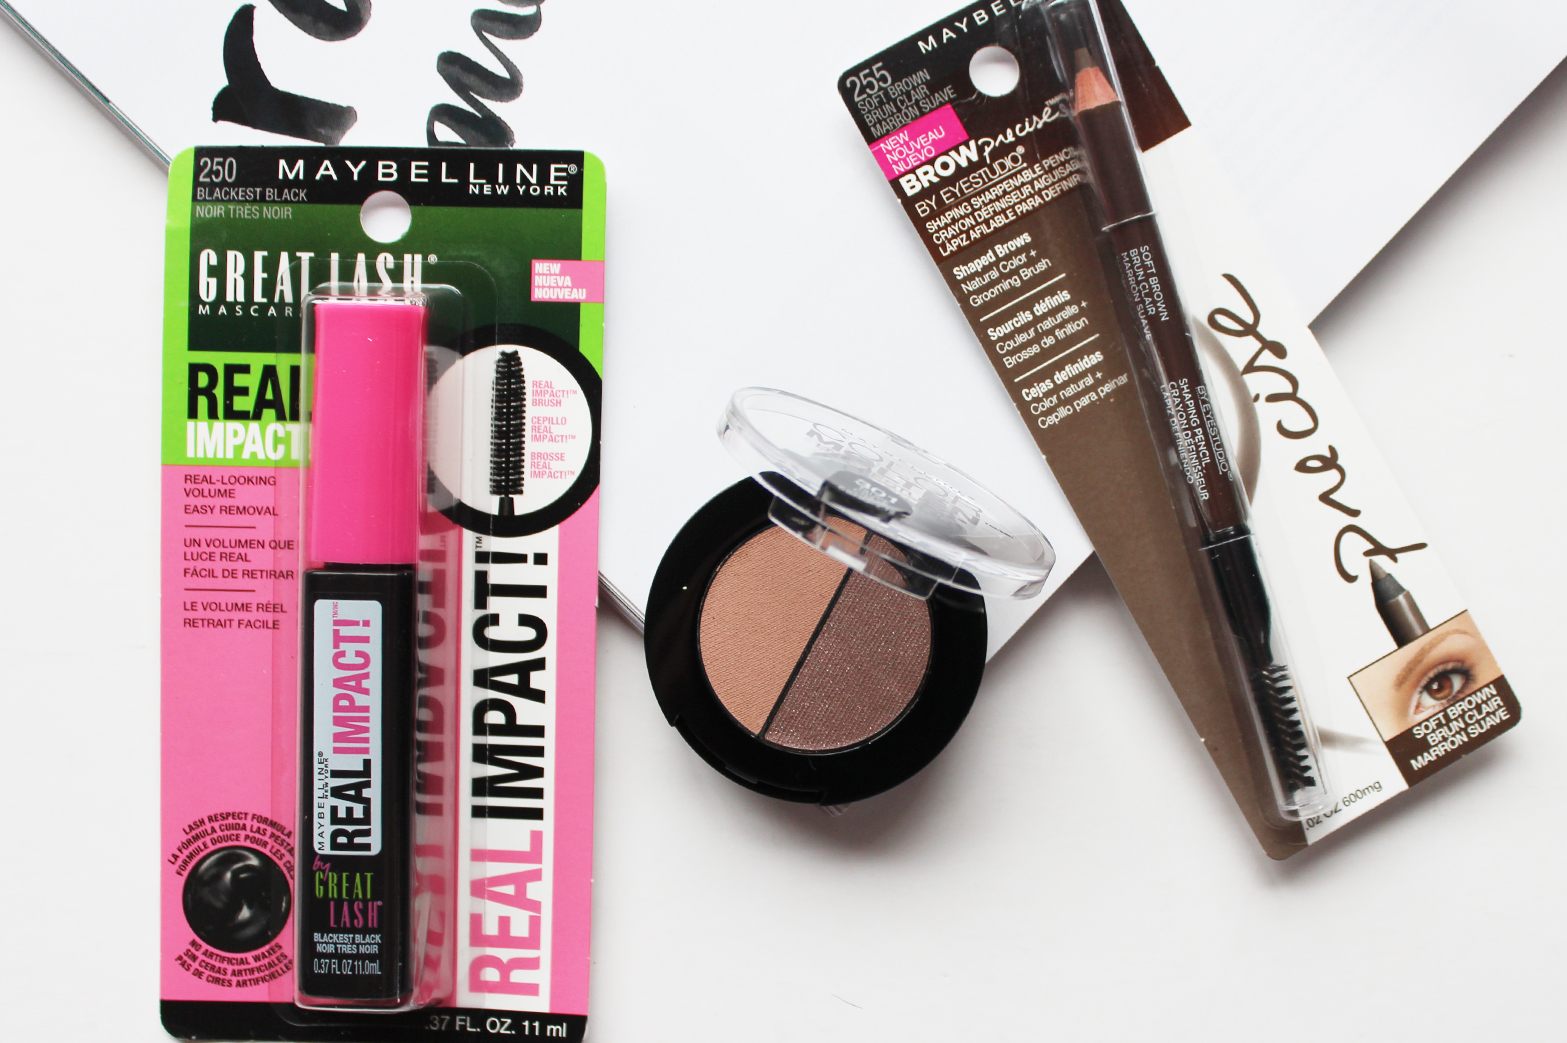 MAYBELLINE | New Releases to NZ [Part 2] - CassandraMyee